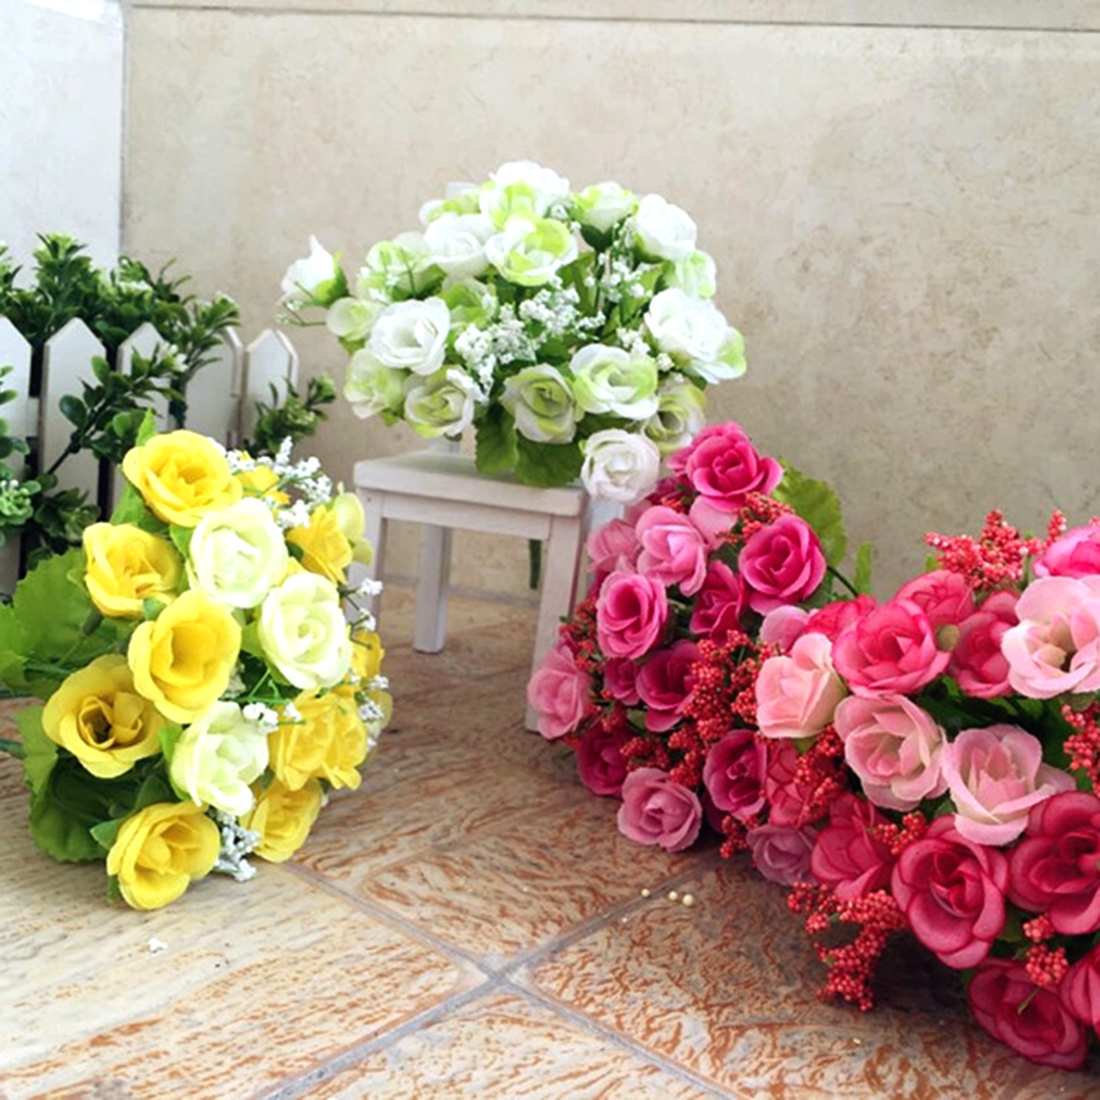 2016 New 21pcs Artificial Perfect Decorative Rose Flowers Silk Wedding Garden Decor Home Floral